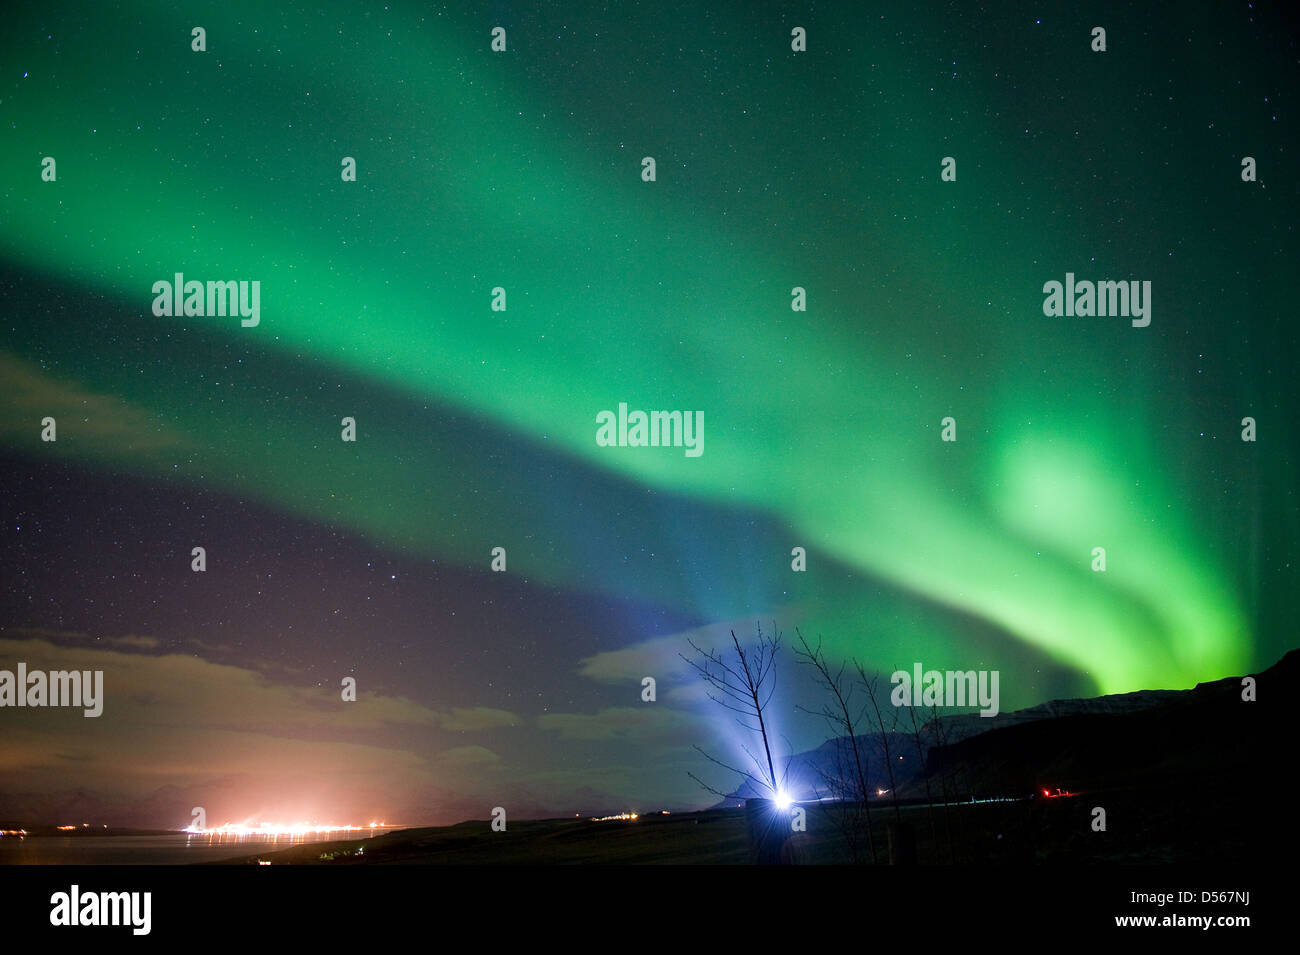 The aurora borealis or the northern lights north of Reykjavik in Iceland - Stock Image